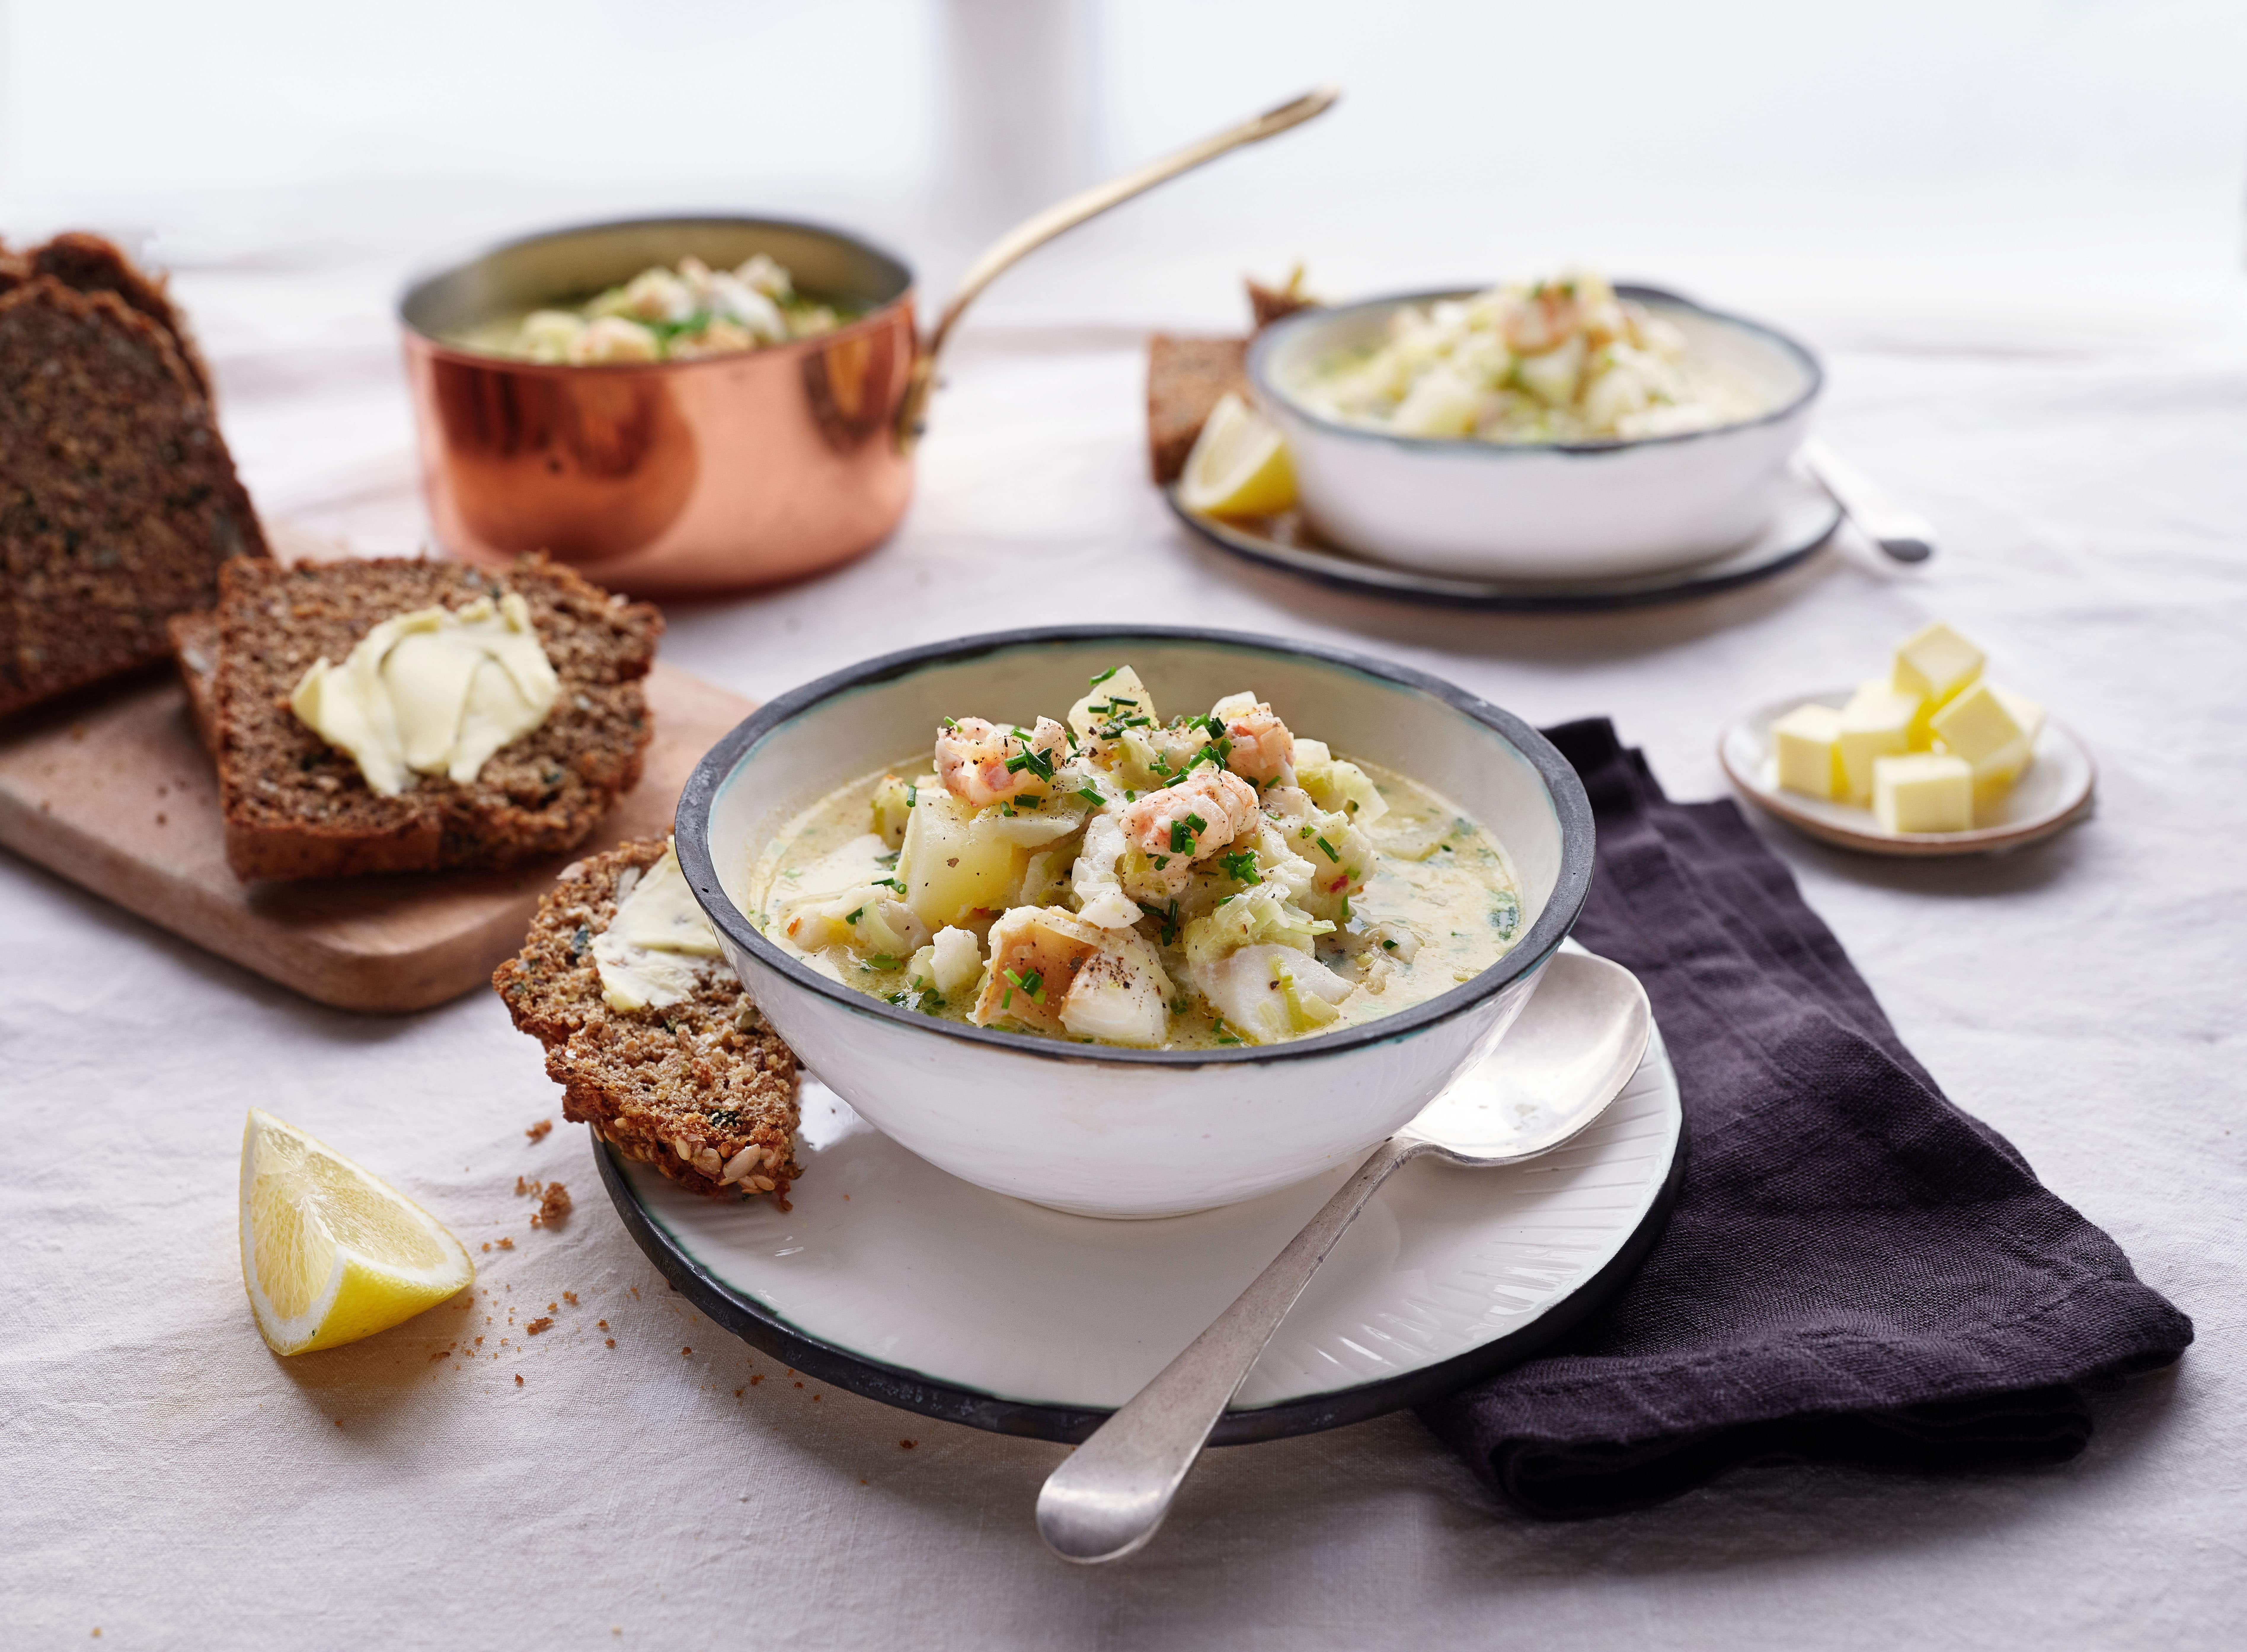 Haddock and Dublin Bay Prawn Chowder with Leeks